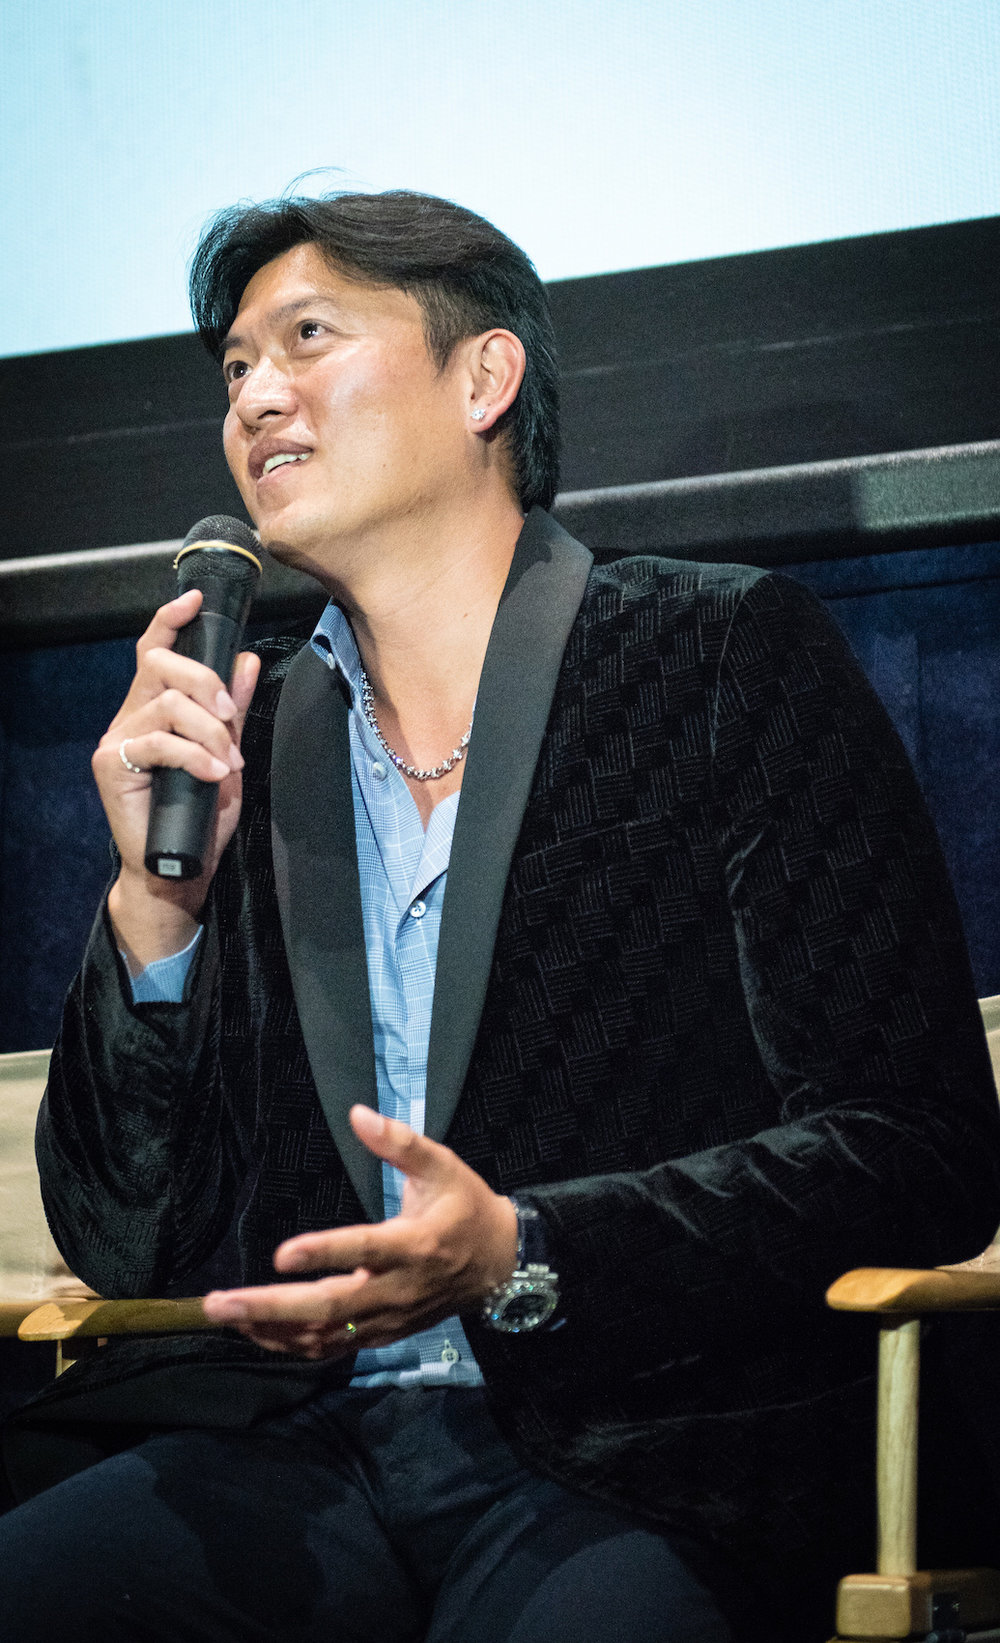 Chien-Ming Wang answers questions at the Q&A.